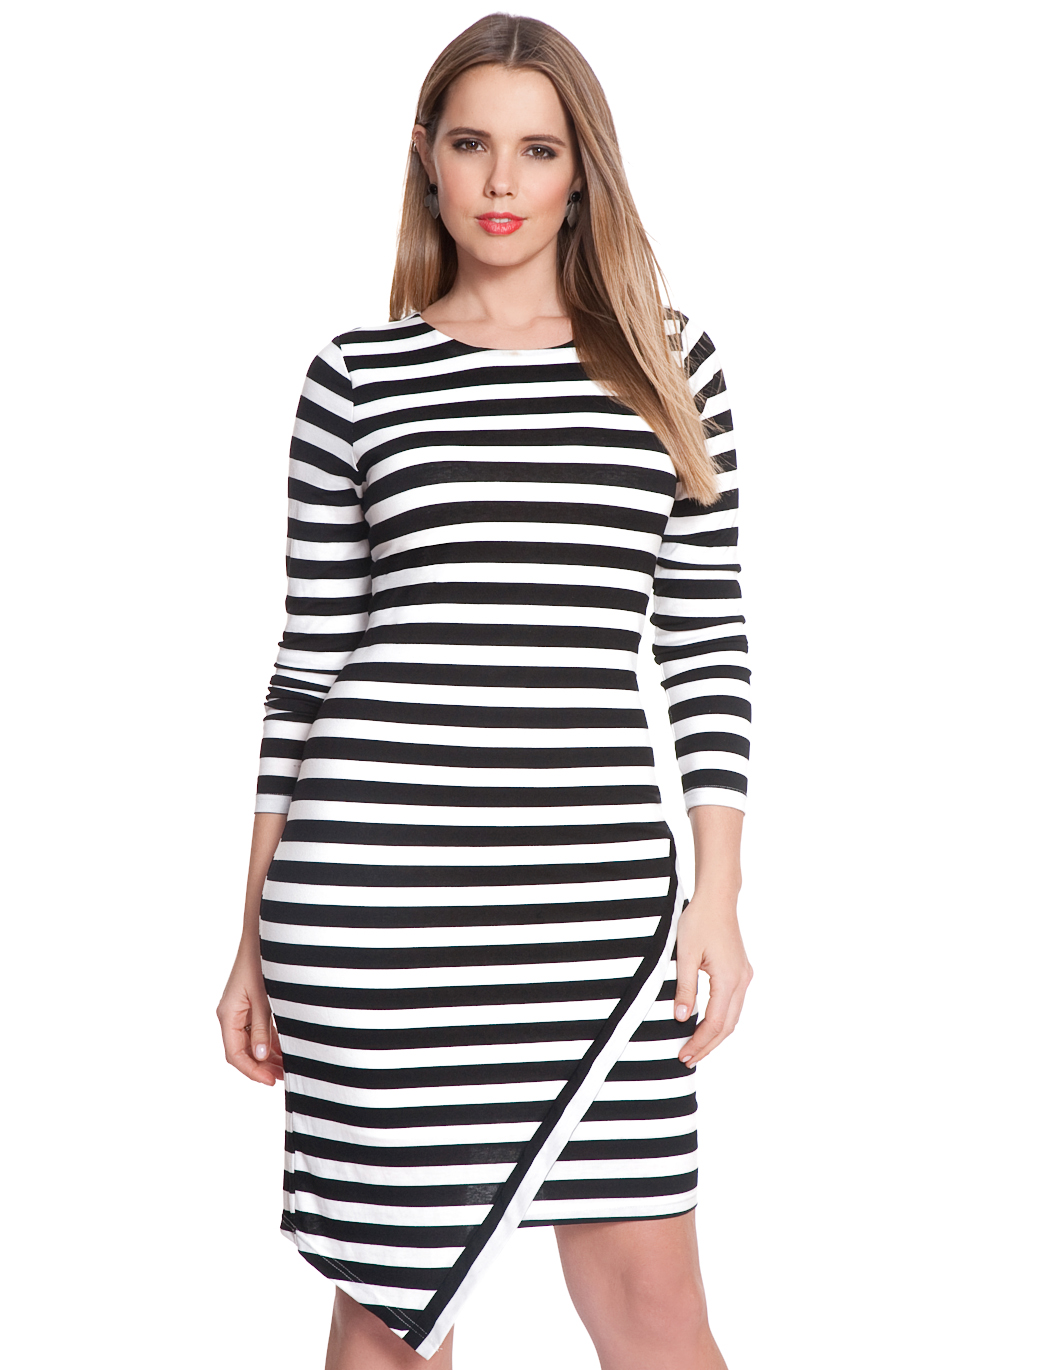 Asymmetrical Hem Striped Dress | Women\'s Plus Size Dresses ...